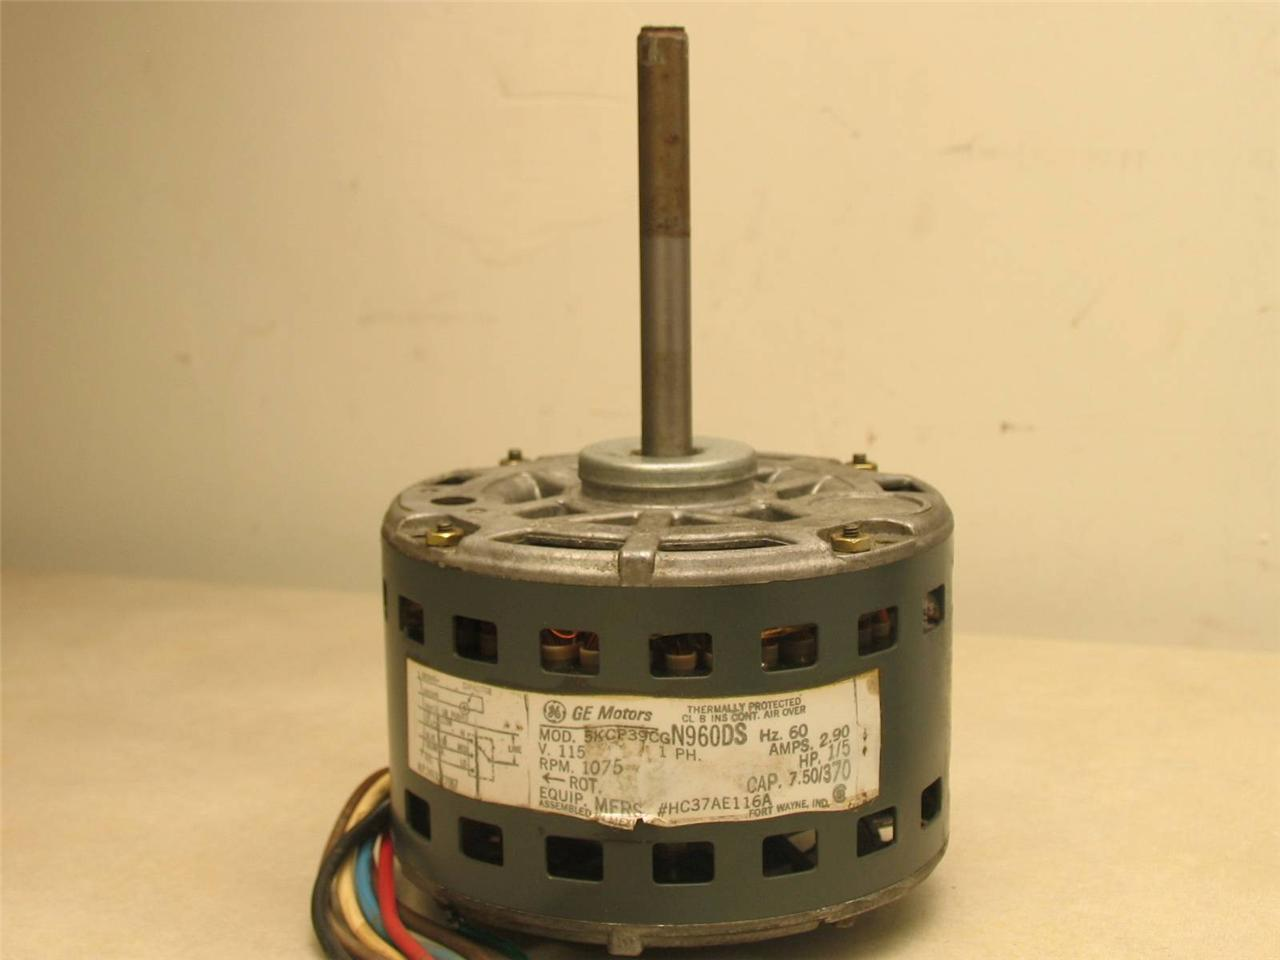 Ge Motors 5kcp39cgn960ds Furnace Blower Motor 1 5hp